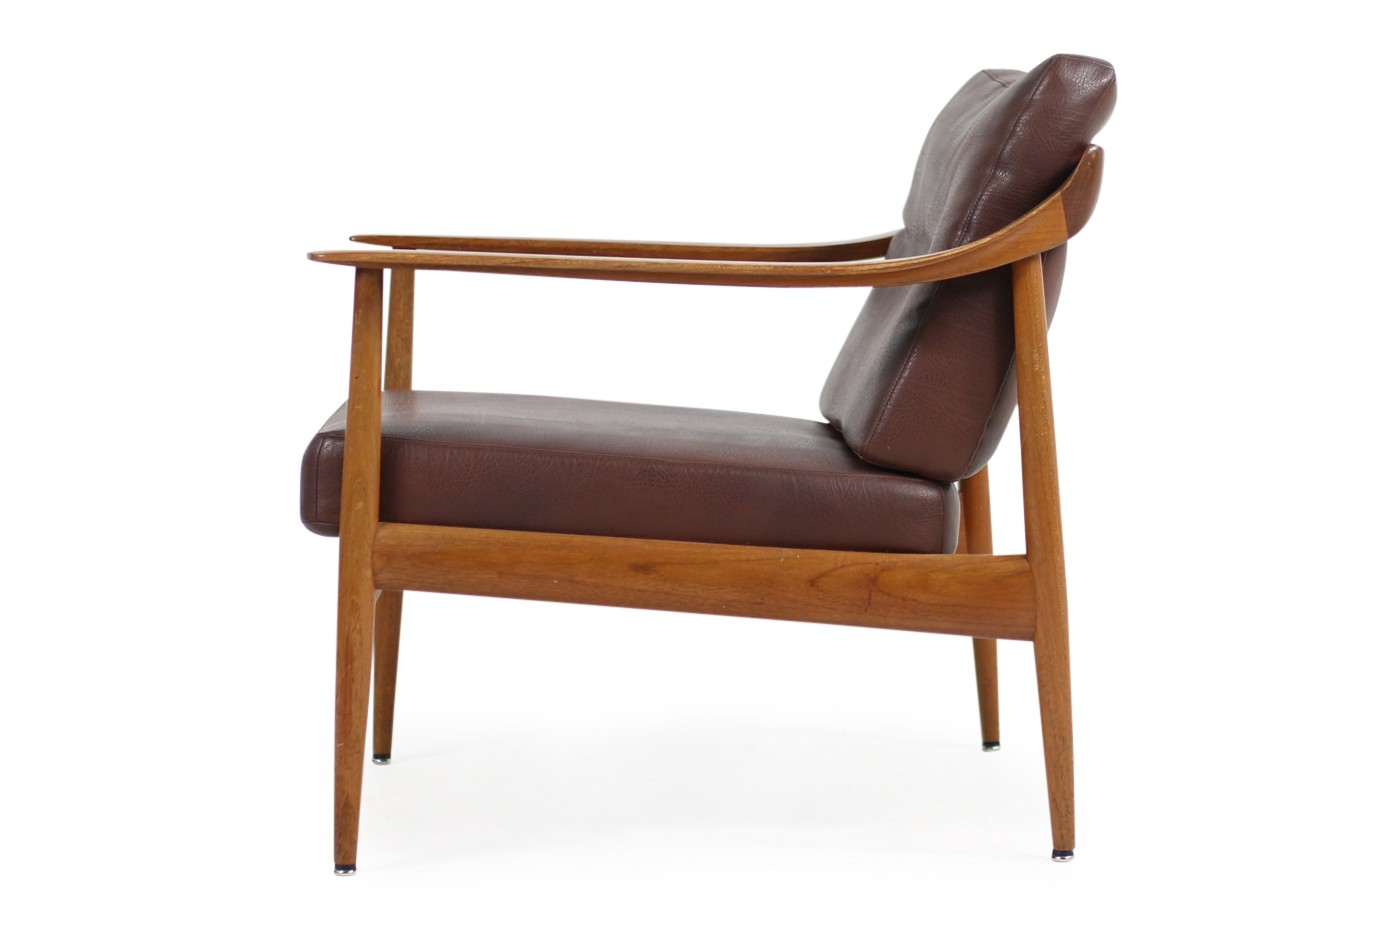 Knoll Antimott Sessel 1960s Easy Chair Teak And Leather Knoll Antimott Mid Century